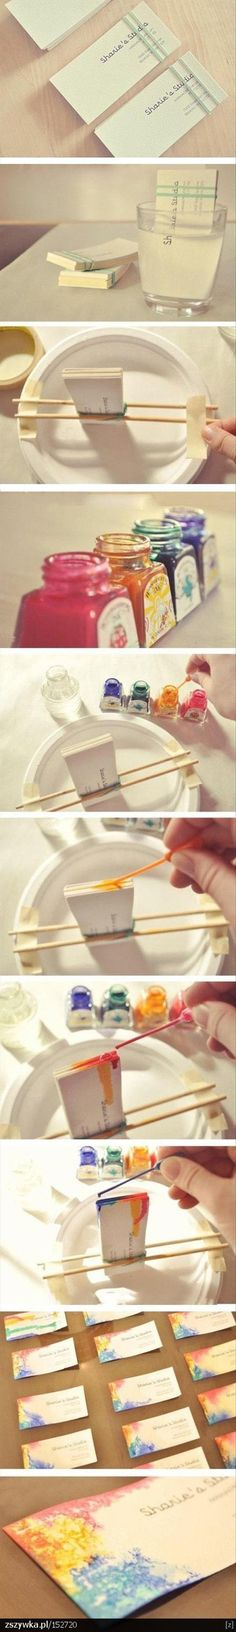 Dump A Day Fun Do It Yourself Craft Ideas - 45 Pics